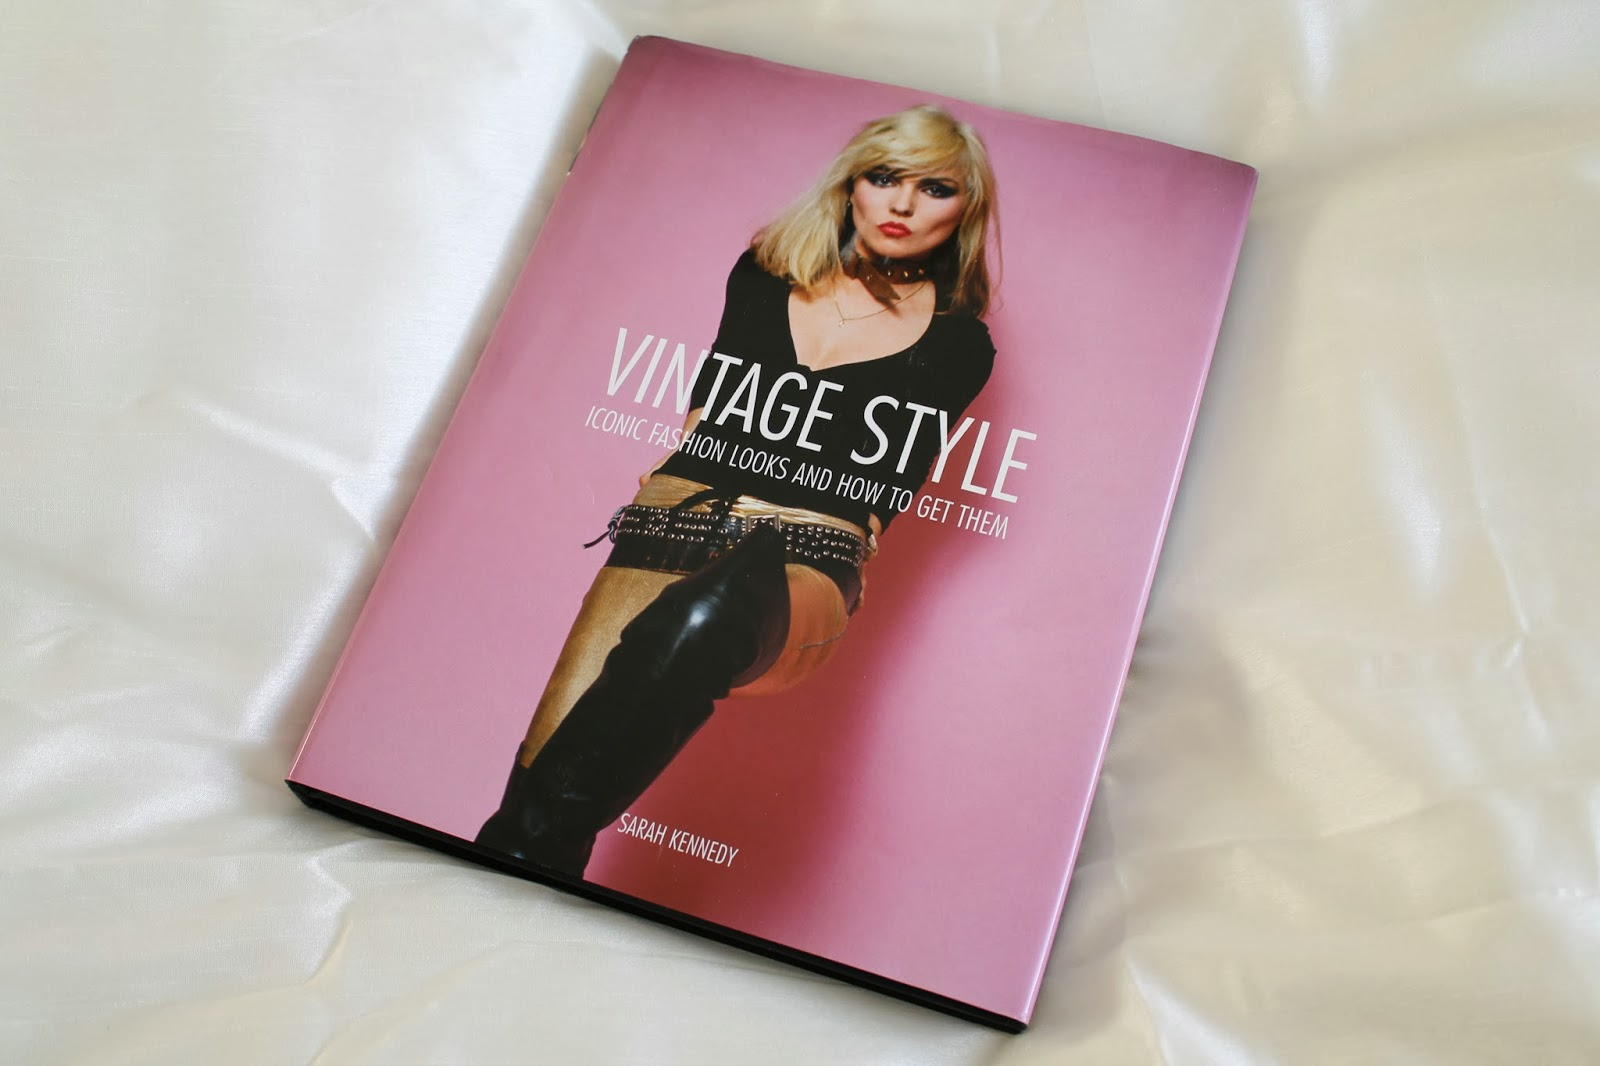 Vintage Style Iconic Fashion Looks And How To Get Them Lovebirds Vintage